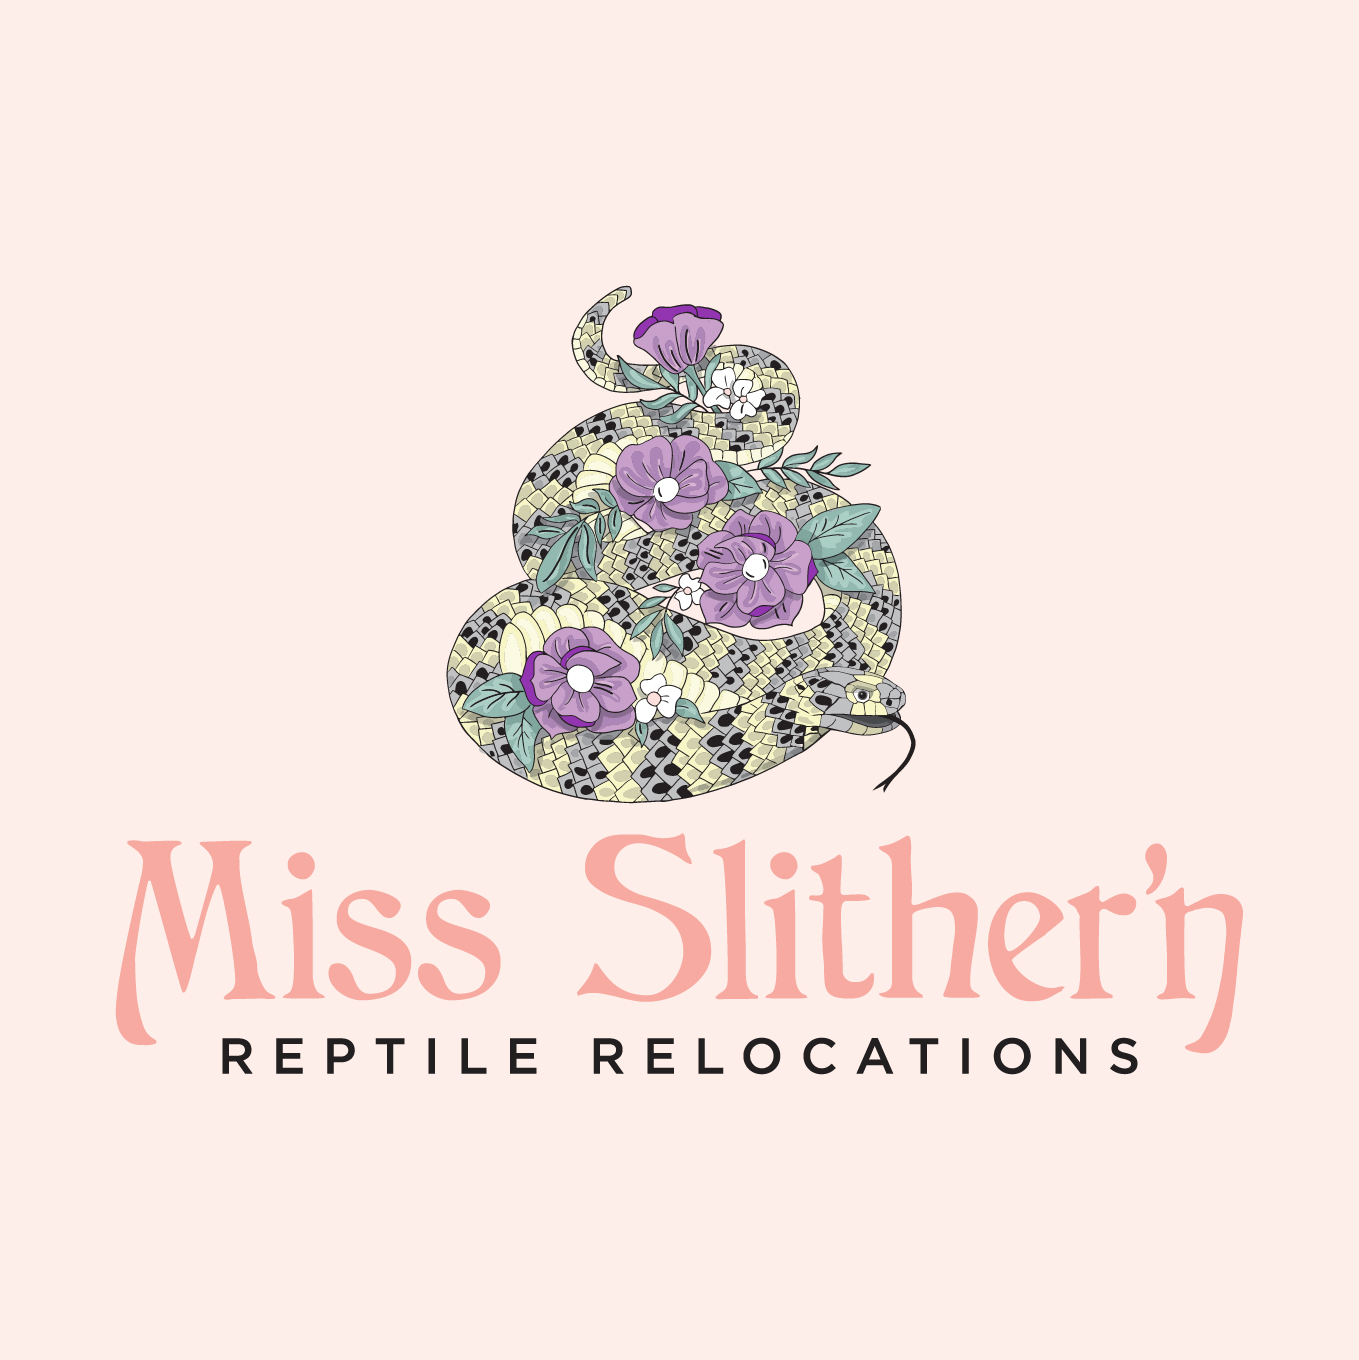 Miss Slither'n Reptile Relocations